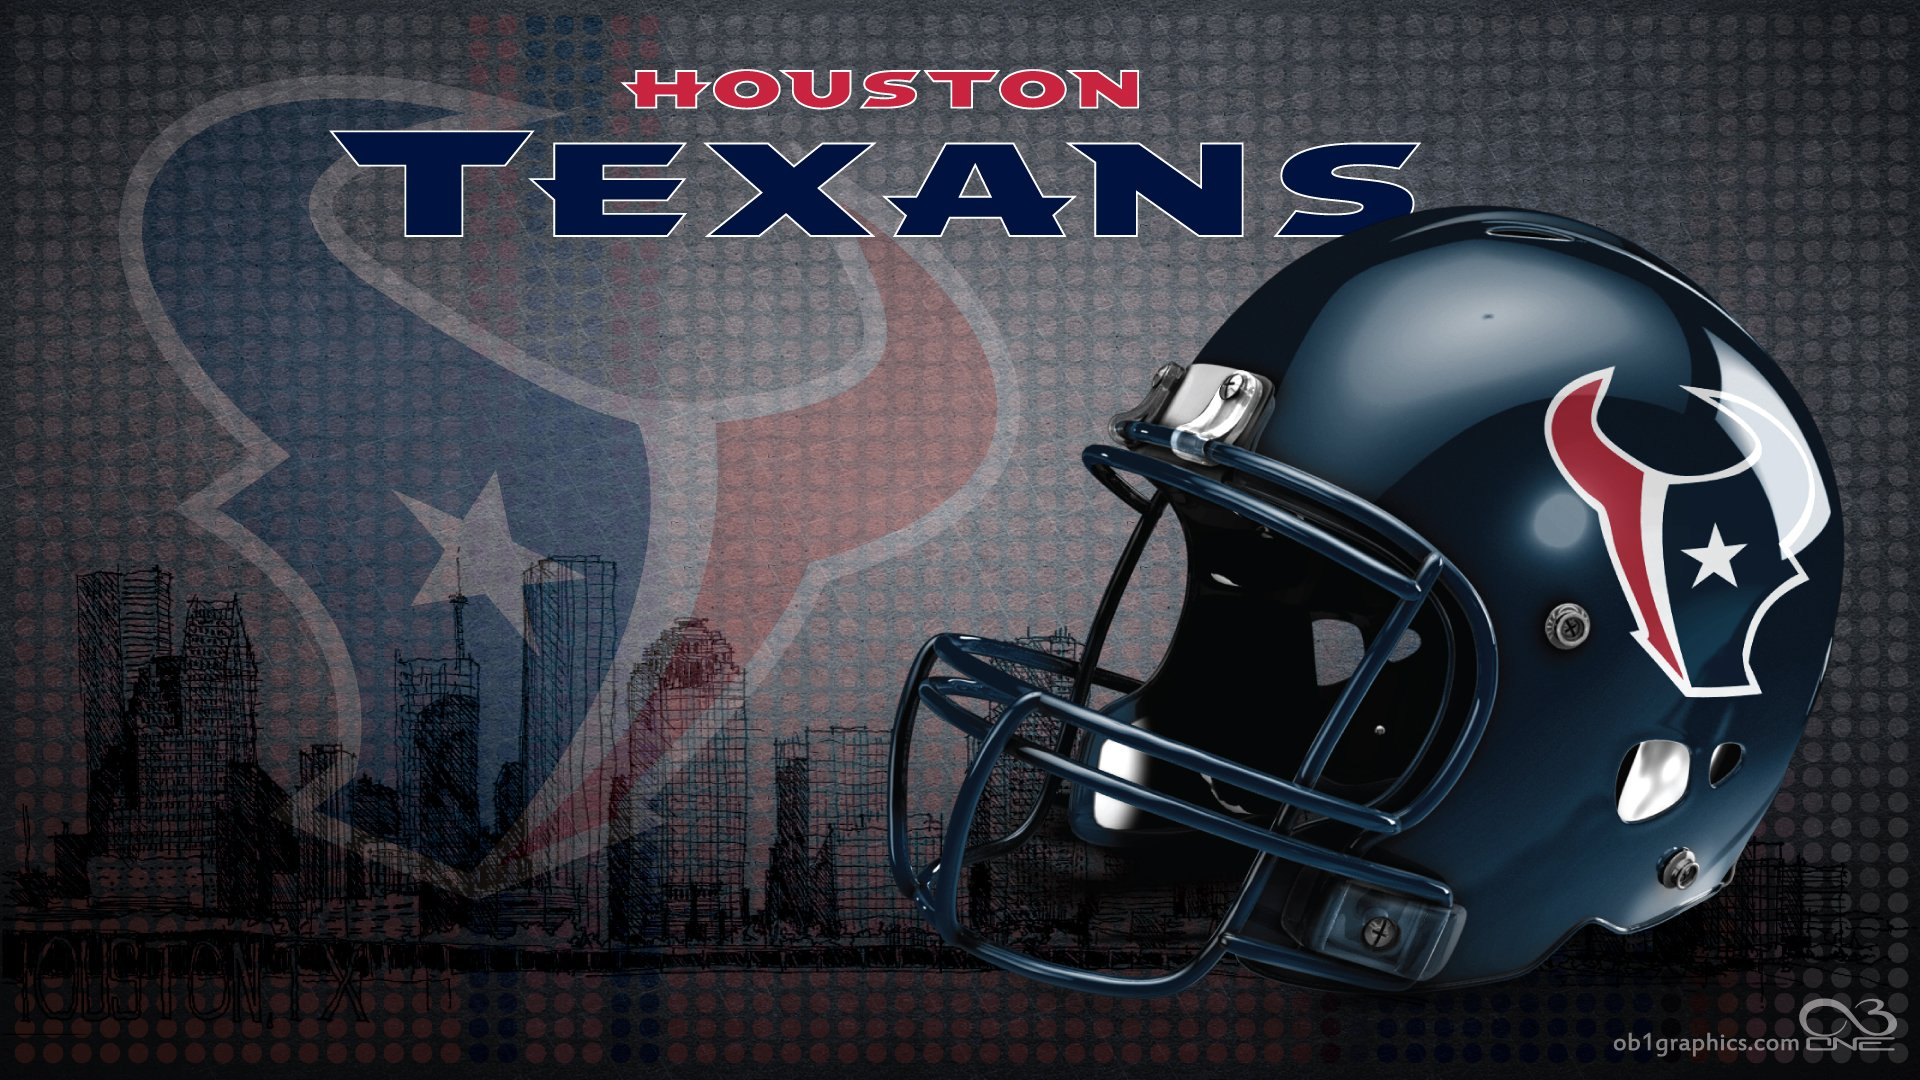 Houston Texans by texasOB1 1920 x 1080 1920x1080